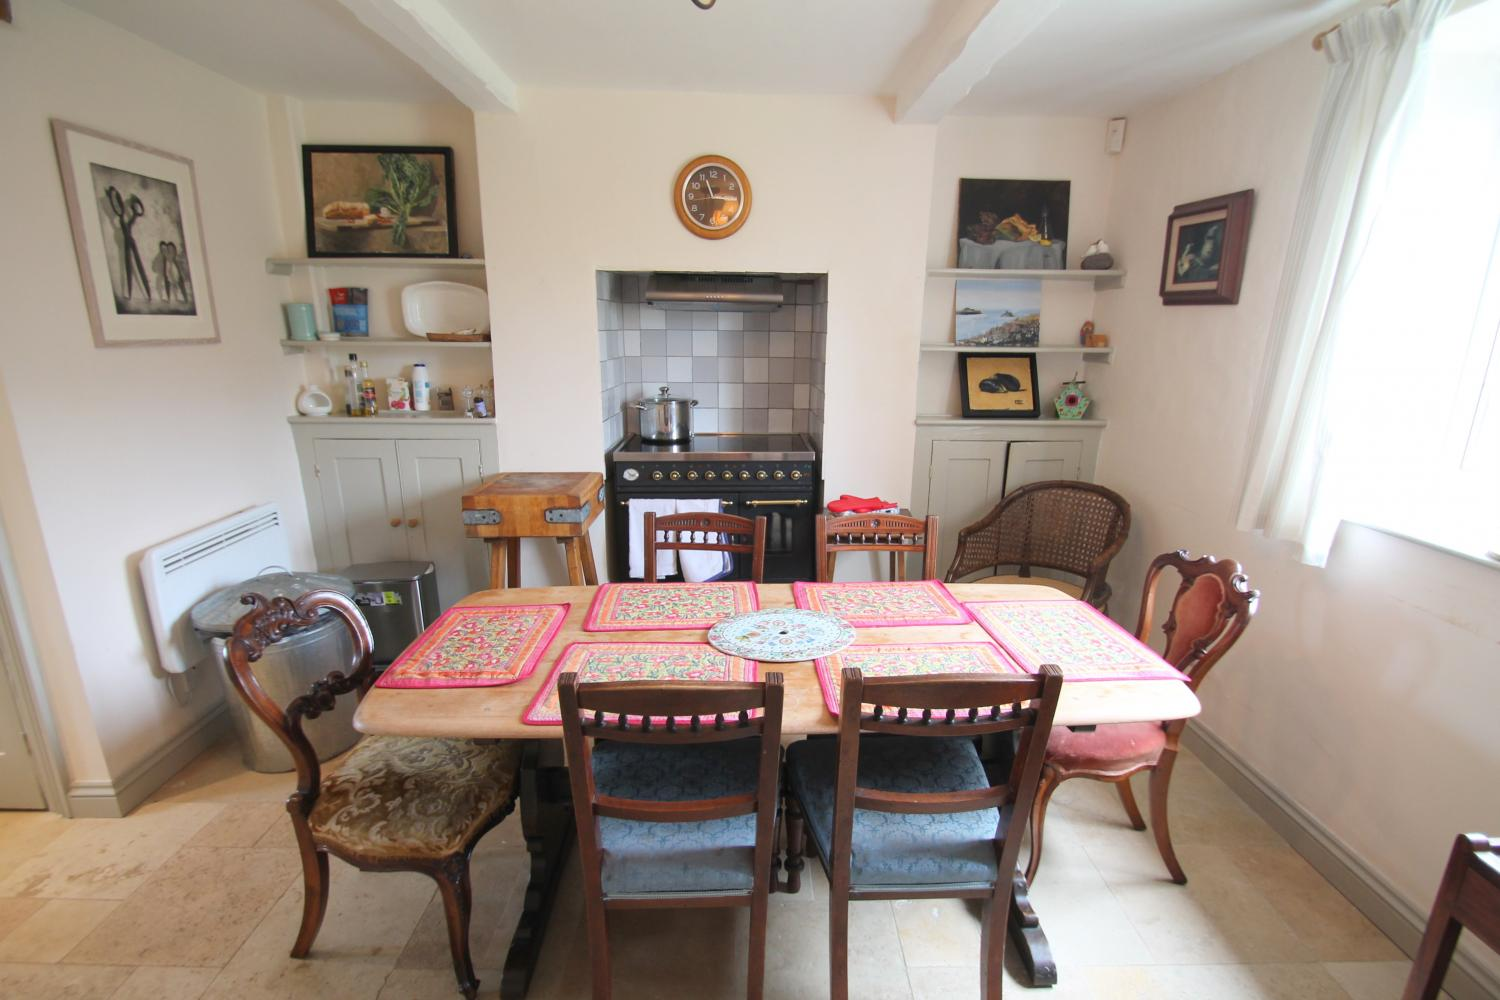 Kitchen-dining room with range cooker